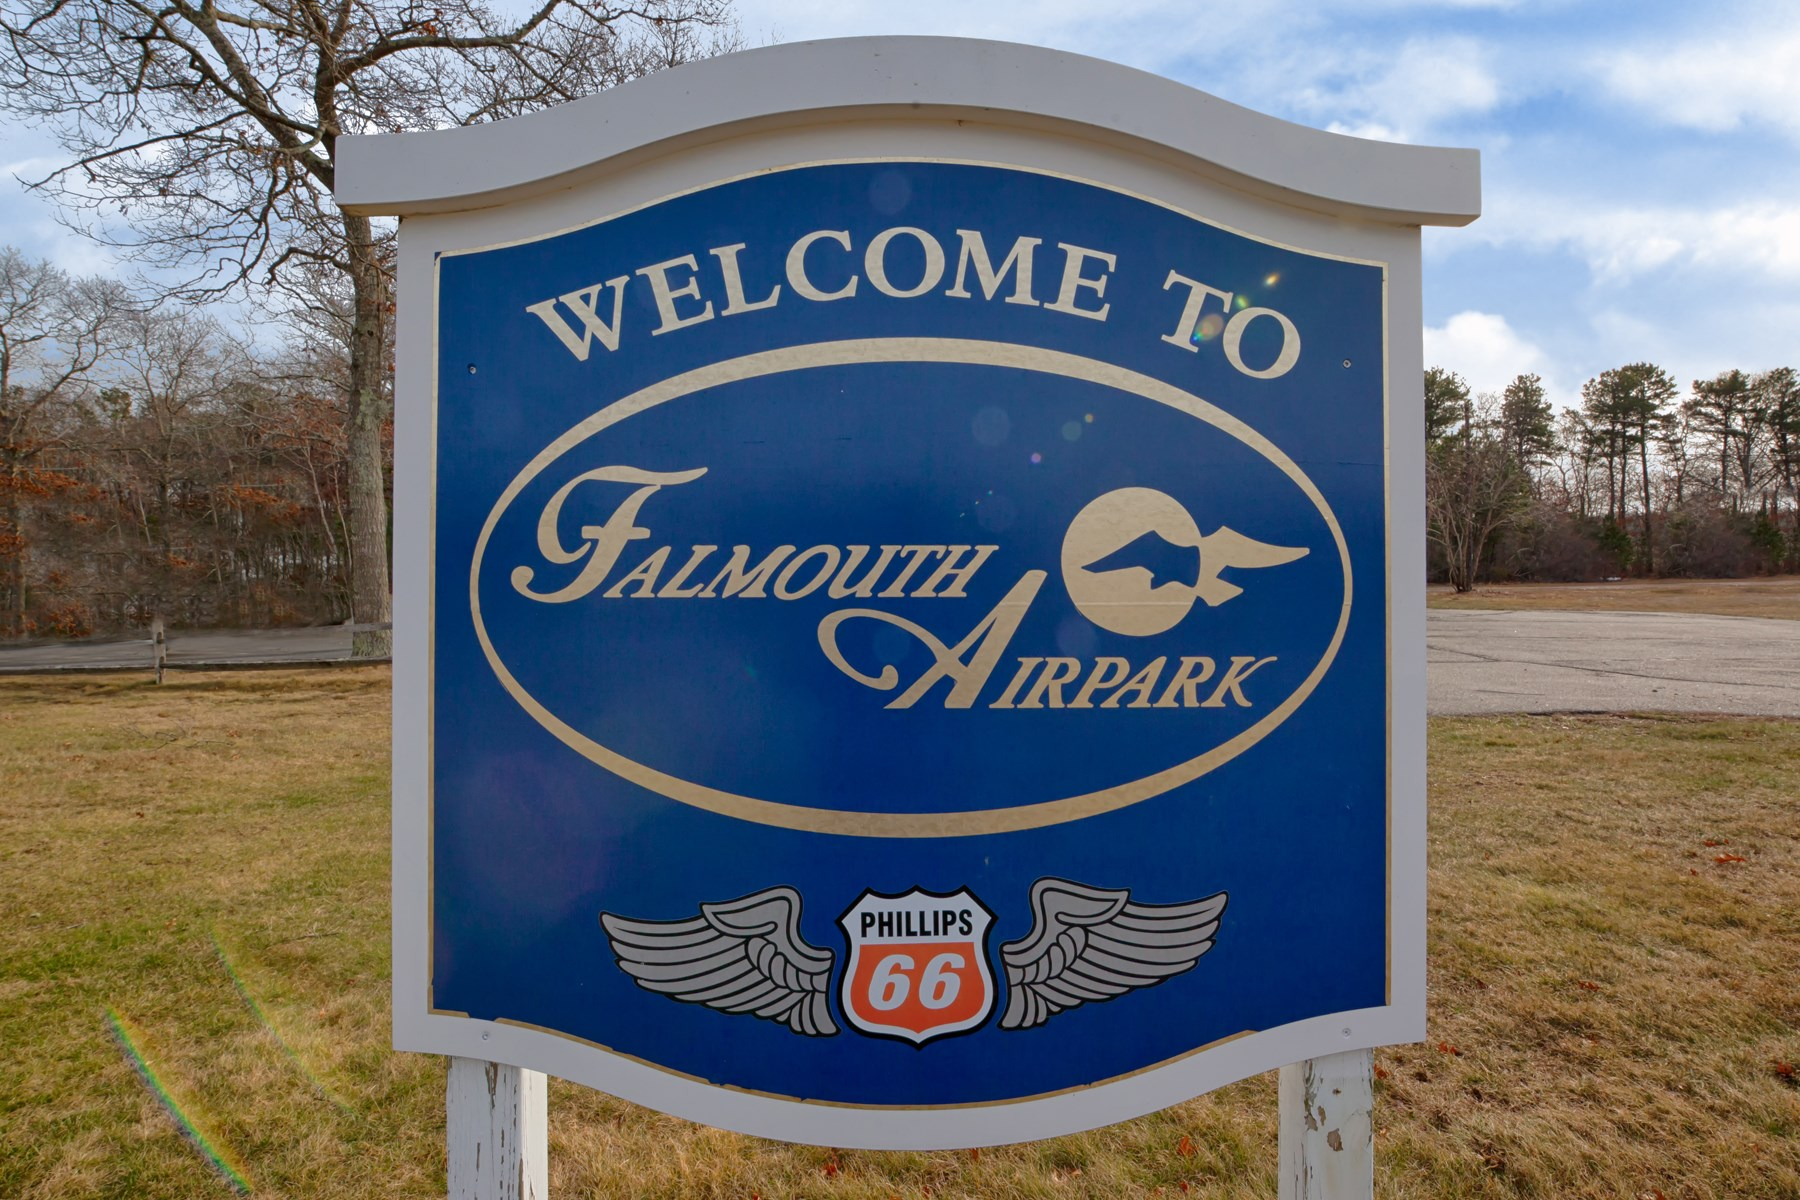 Land for Sale at Lot 74A Airpark Drive, East Falmouth, MA Lot 74a Airpark Drive Falmouth, Massachusetts 02536 United States